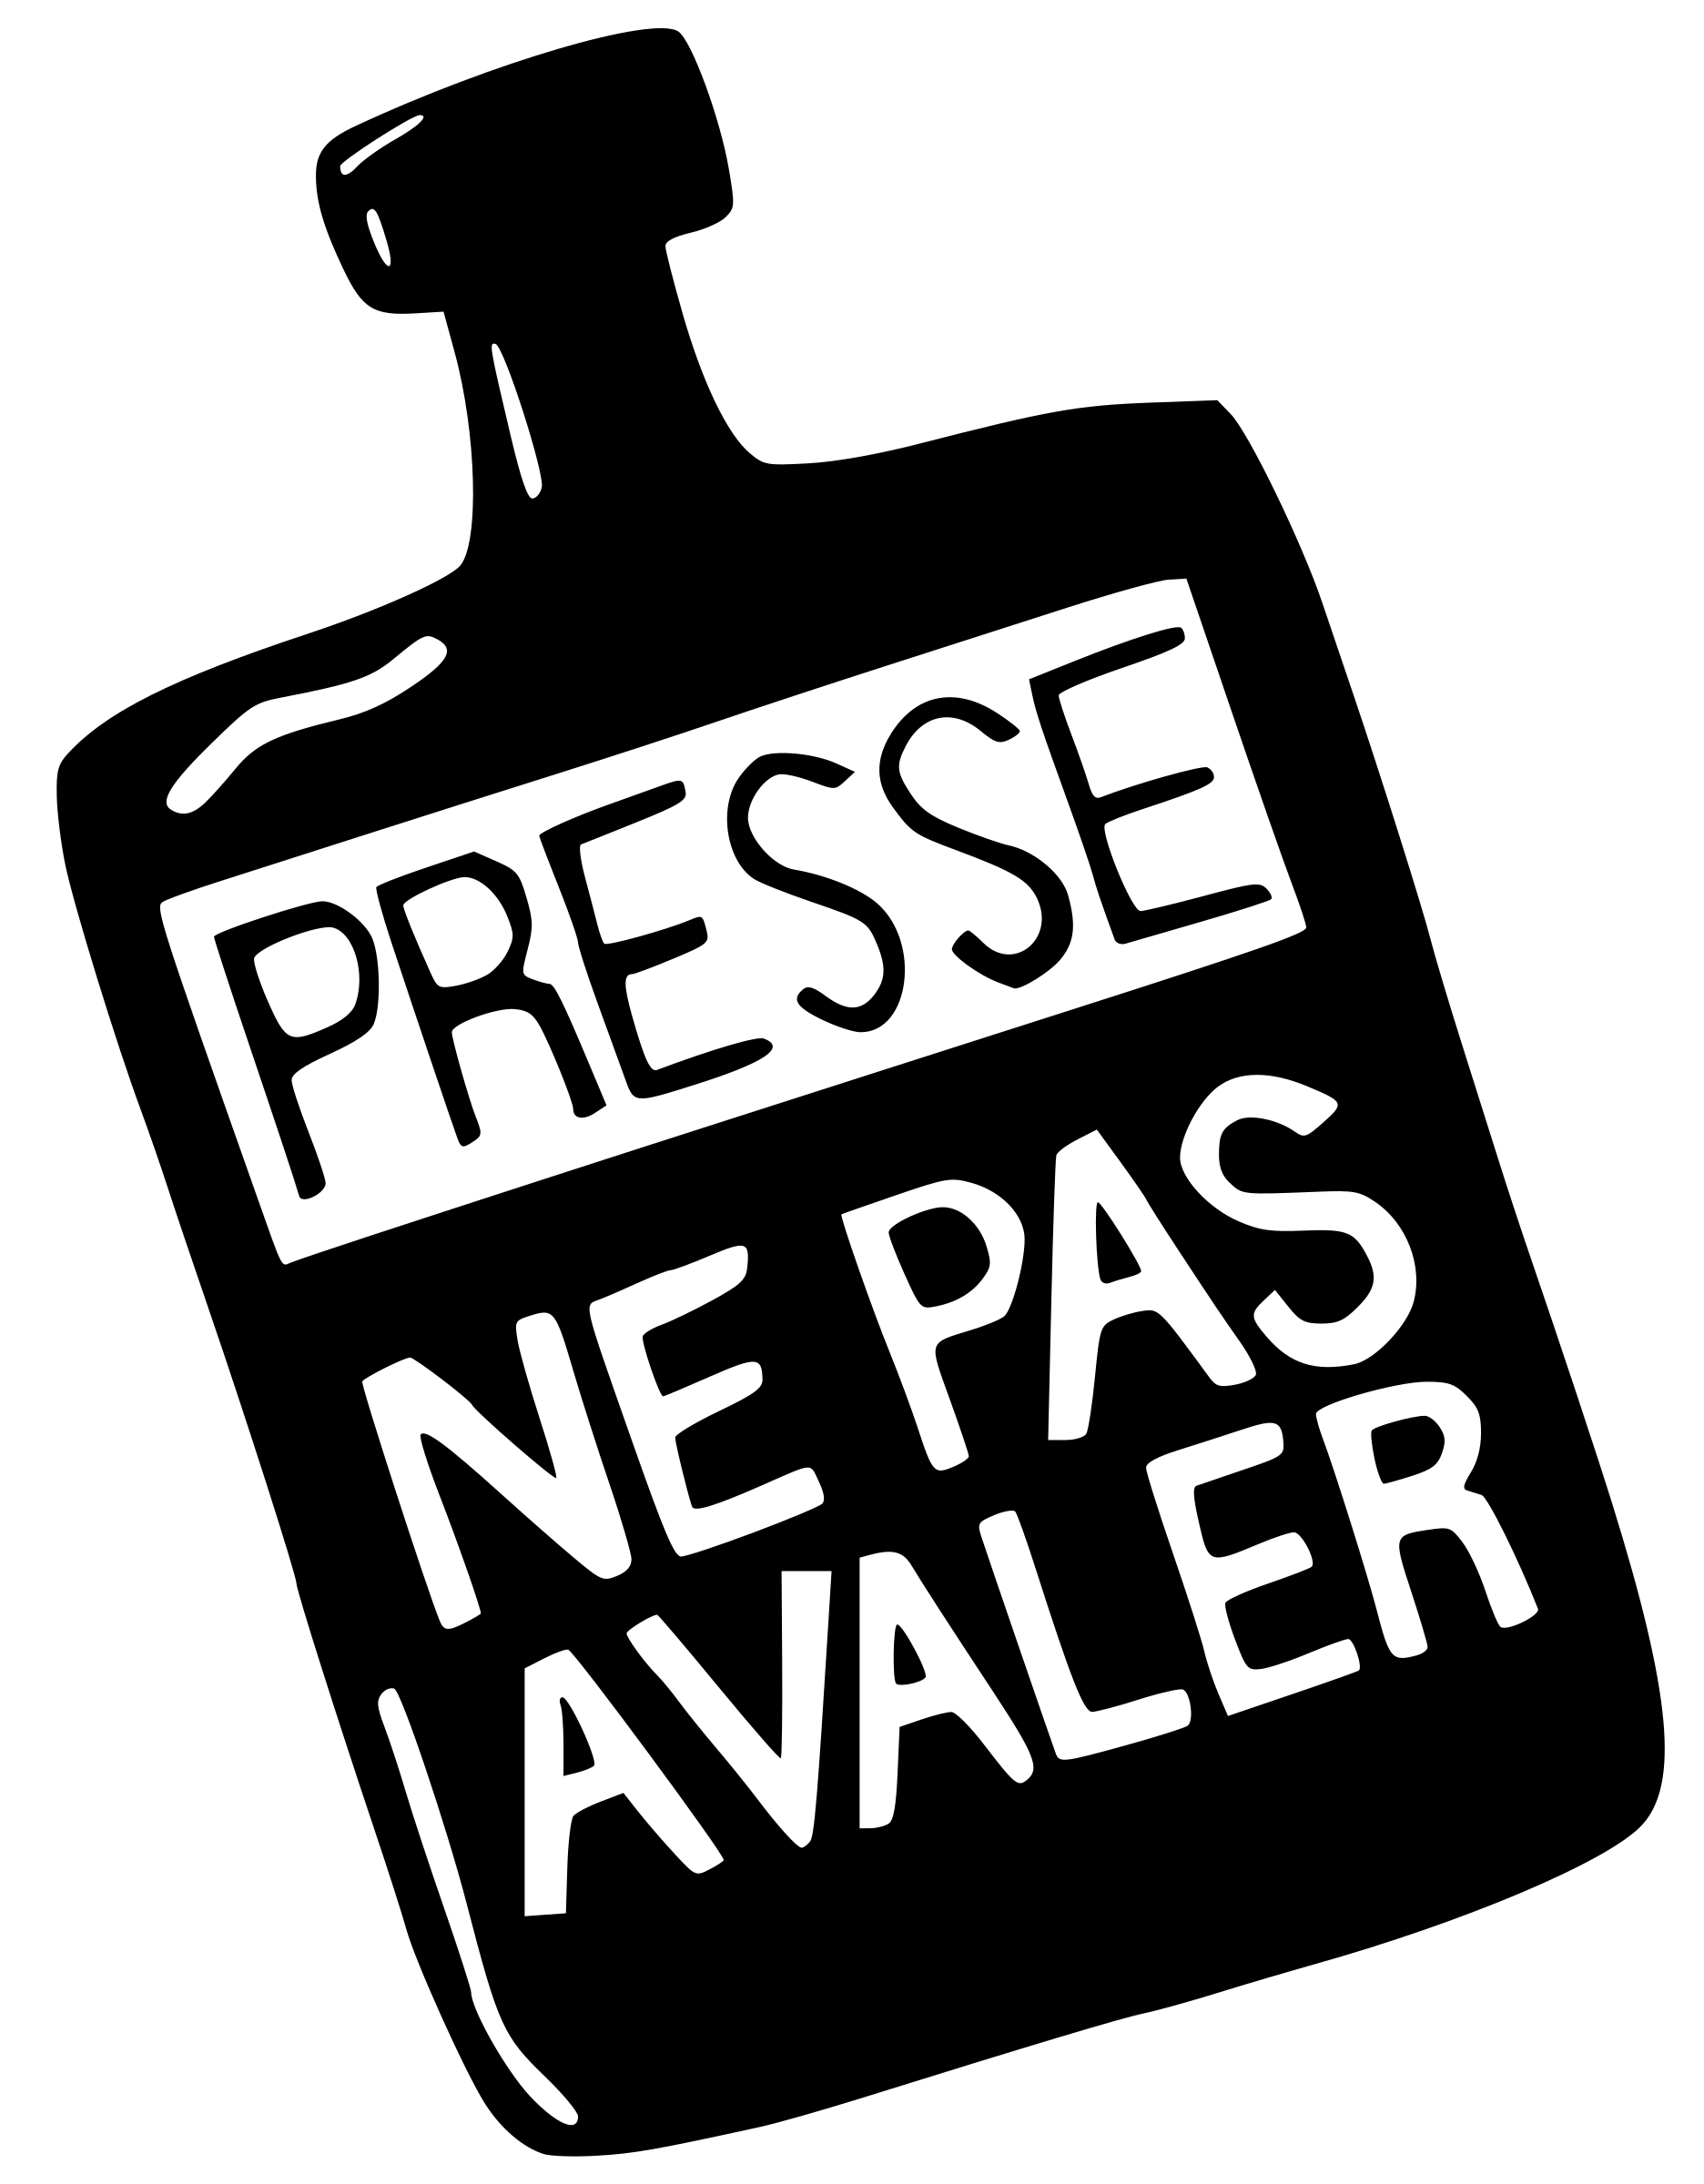 Presse ne pas avaler (Press : don't swallow) by ben